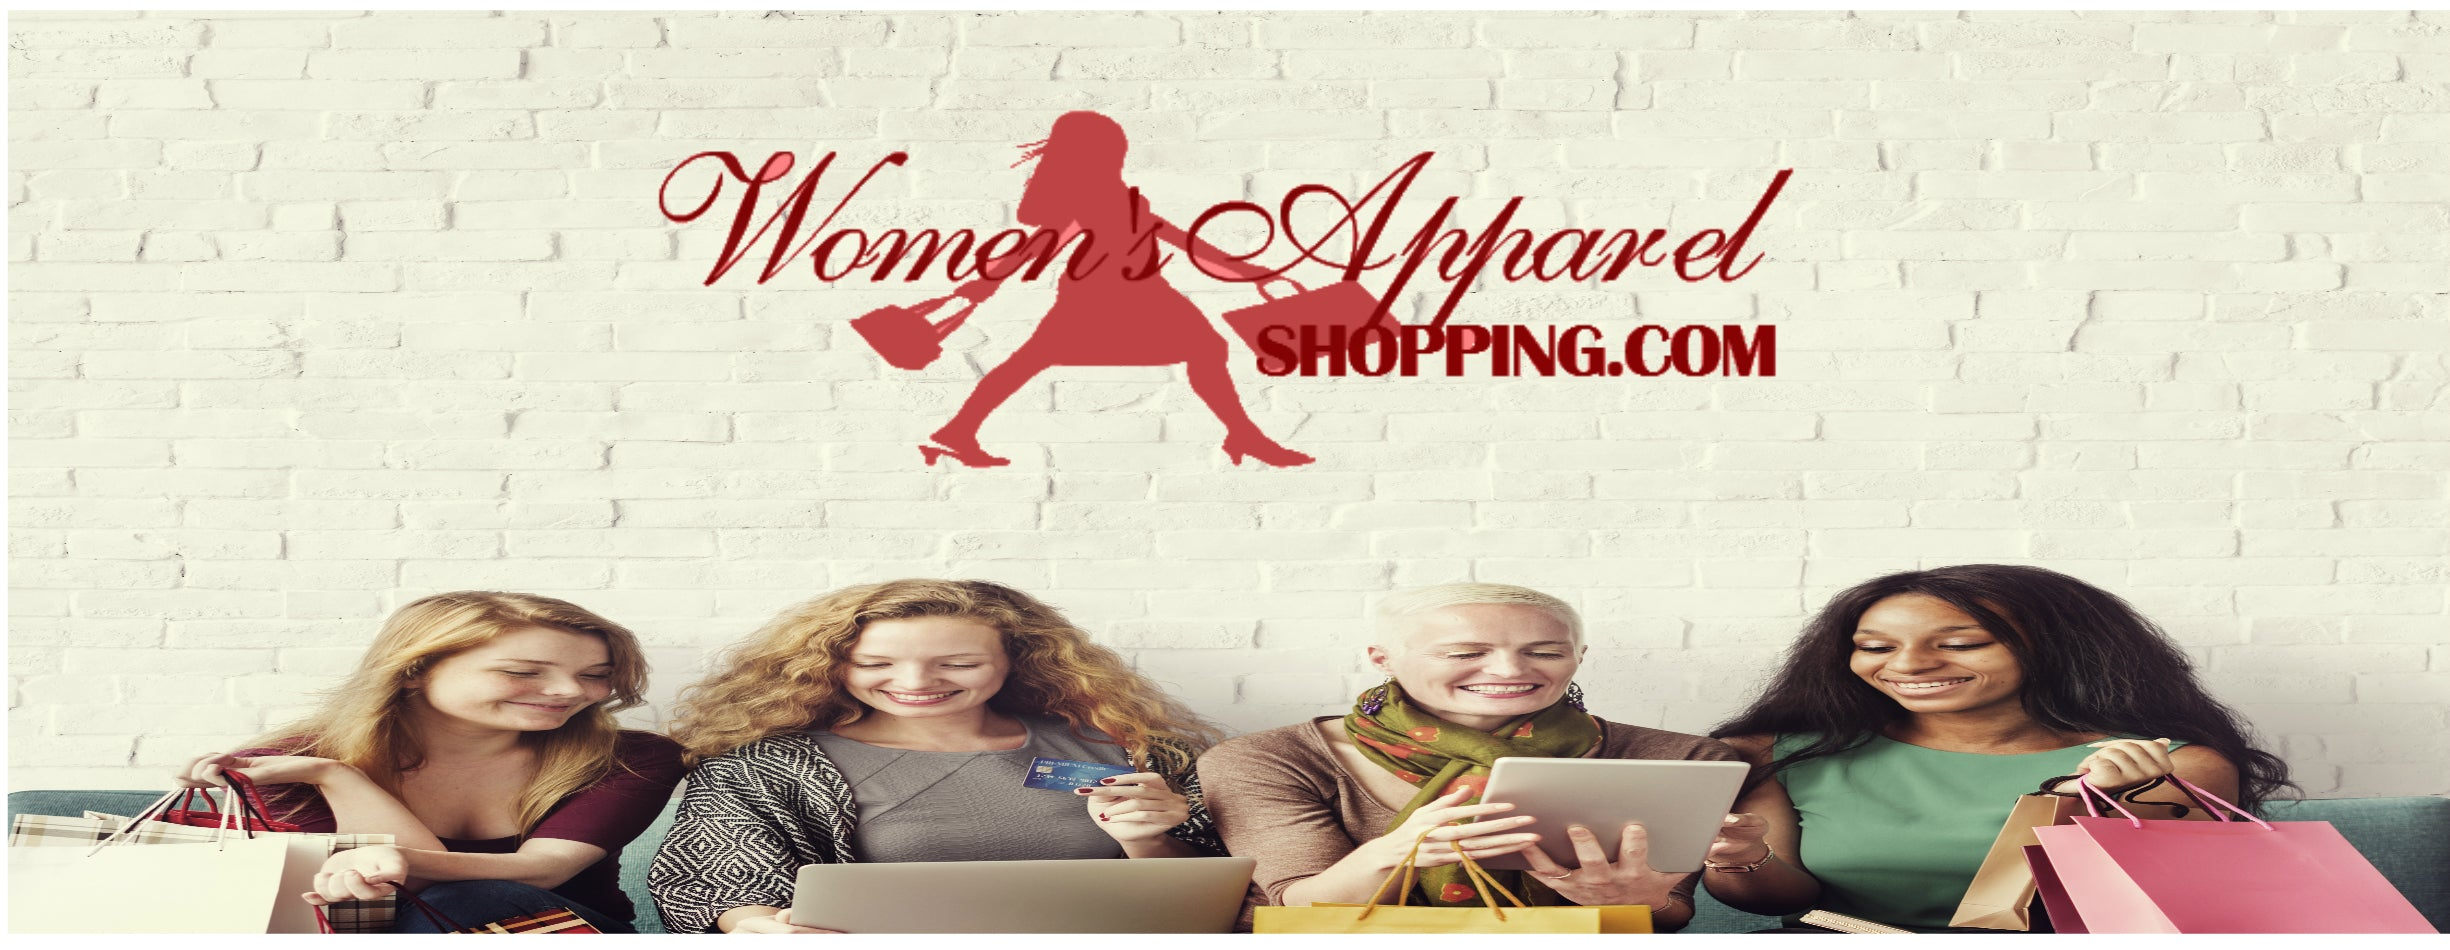 $50 - Women's Apparel Shopping (RED)